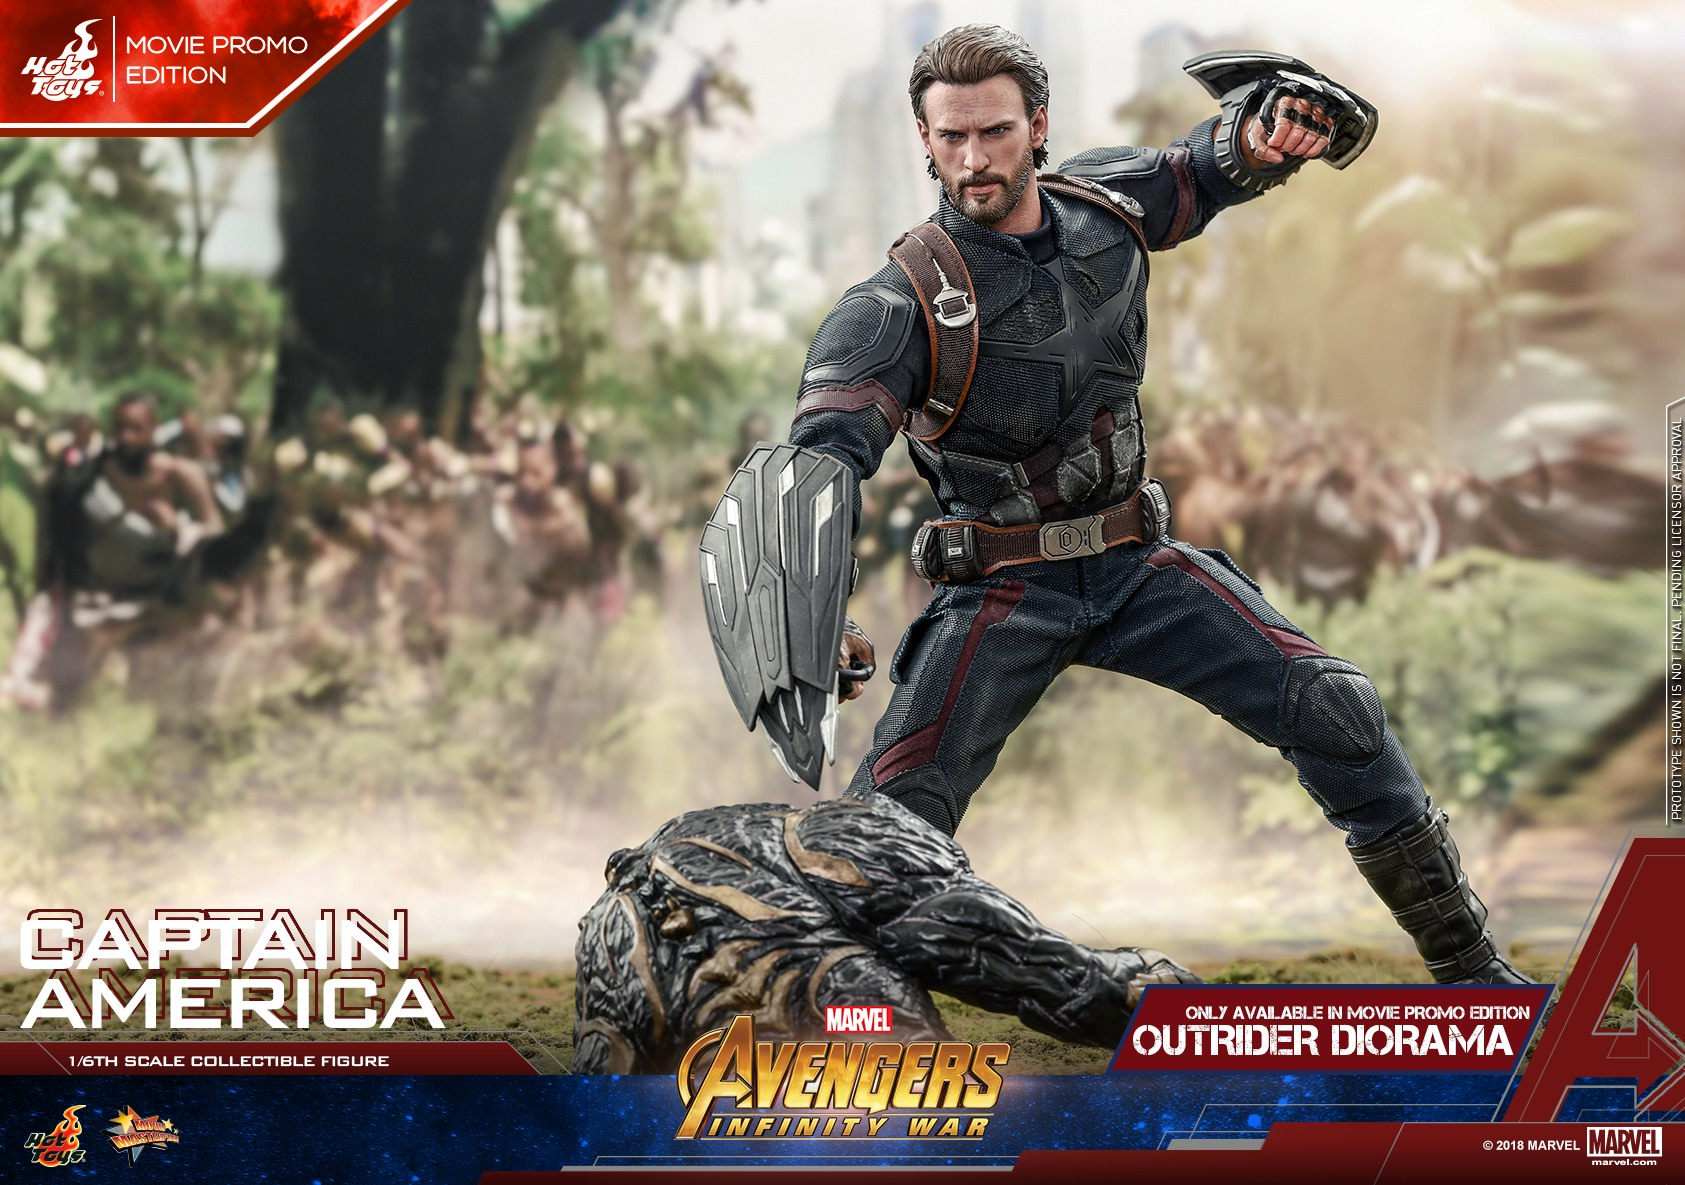 Hot Toys - AIW - Captain America collectible figure (Movie Promo)_PR12.jpg